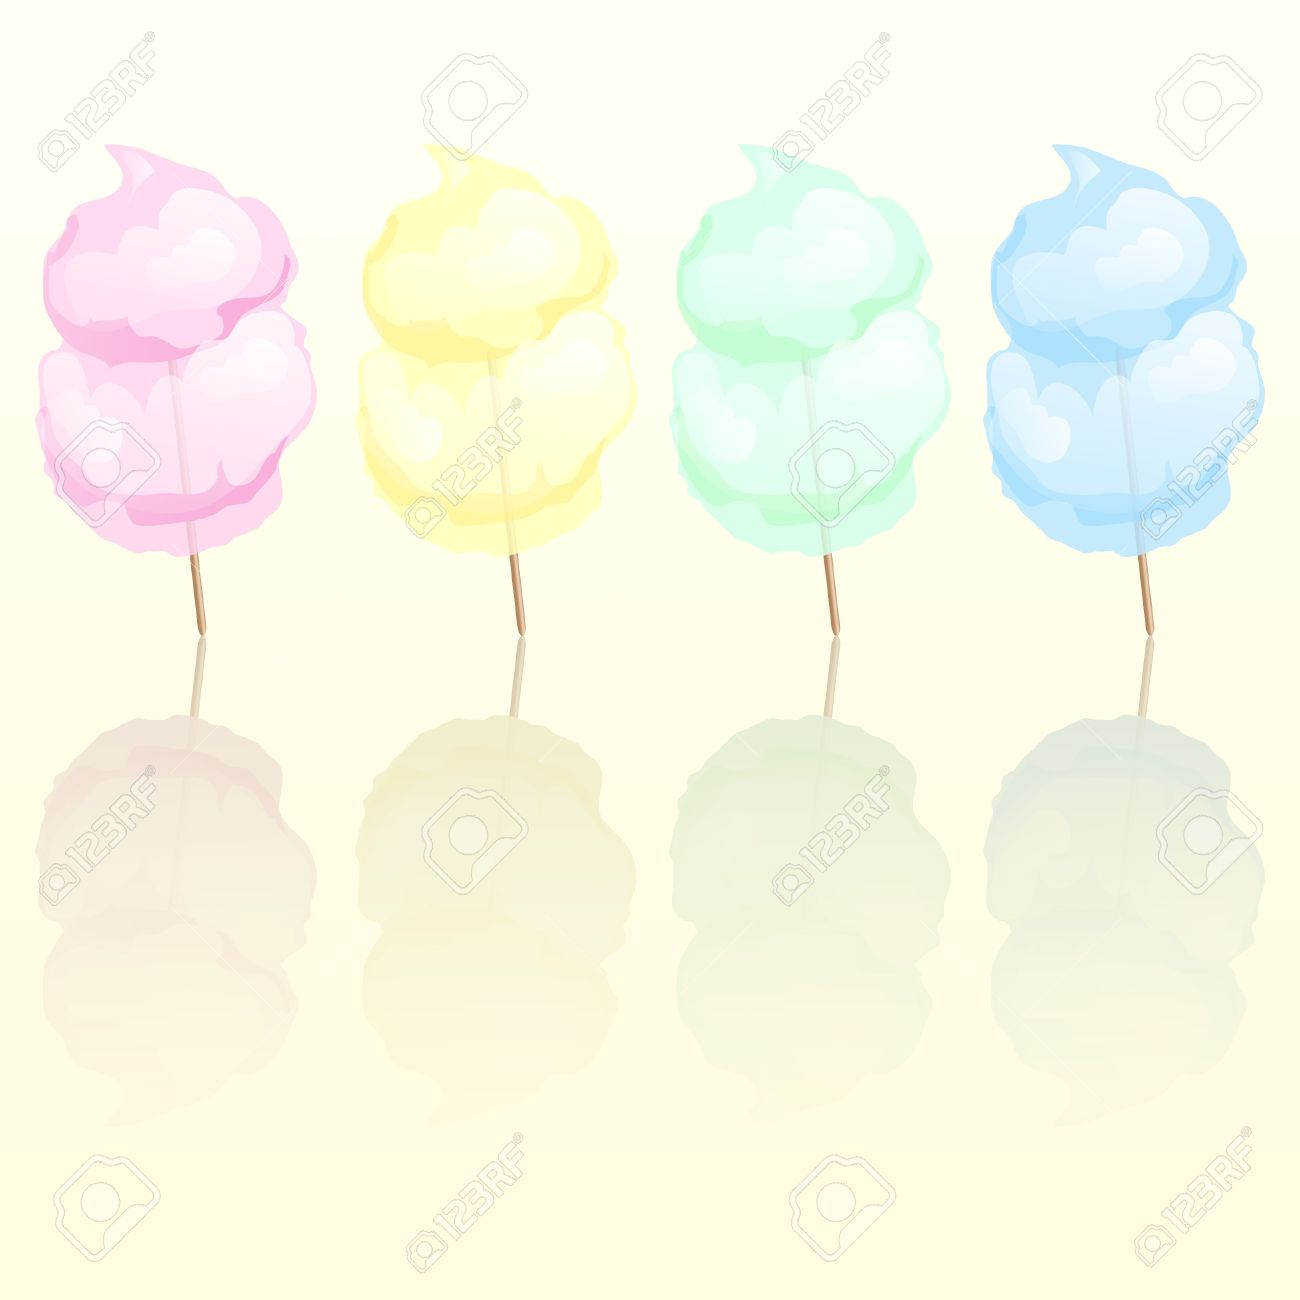 Candy Floss In Four Different Colours Reflected. EPS10 Vector.